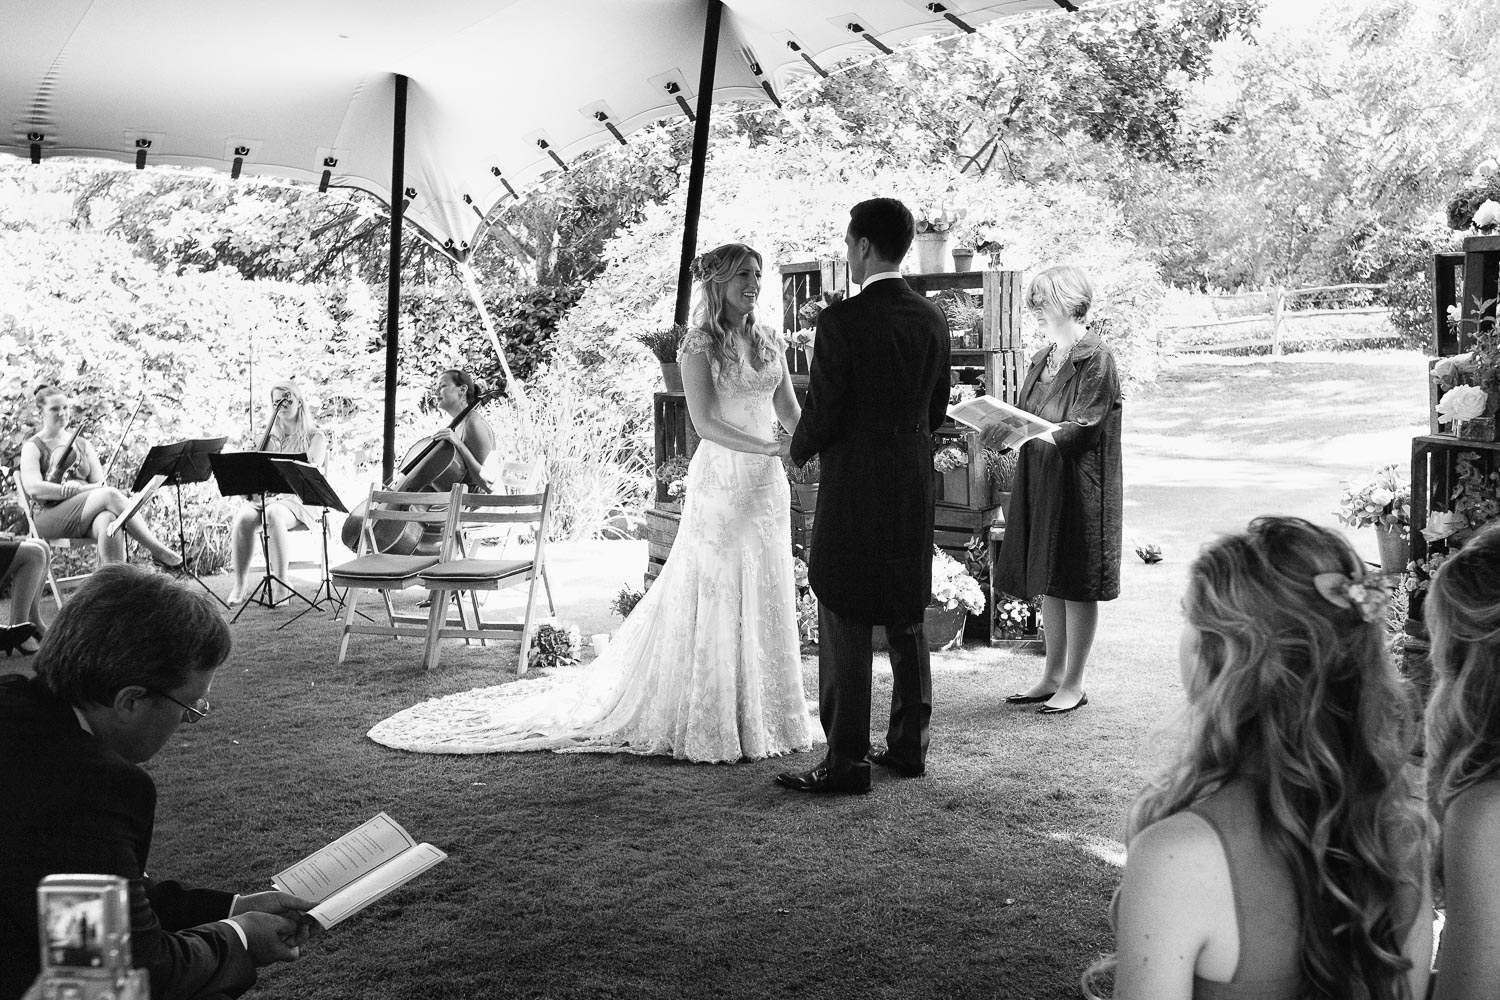 Wedding photography portfolio humanist ceremony marquee black and white